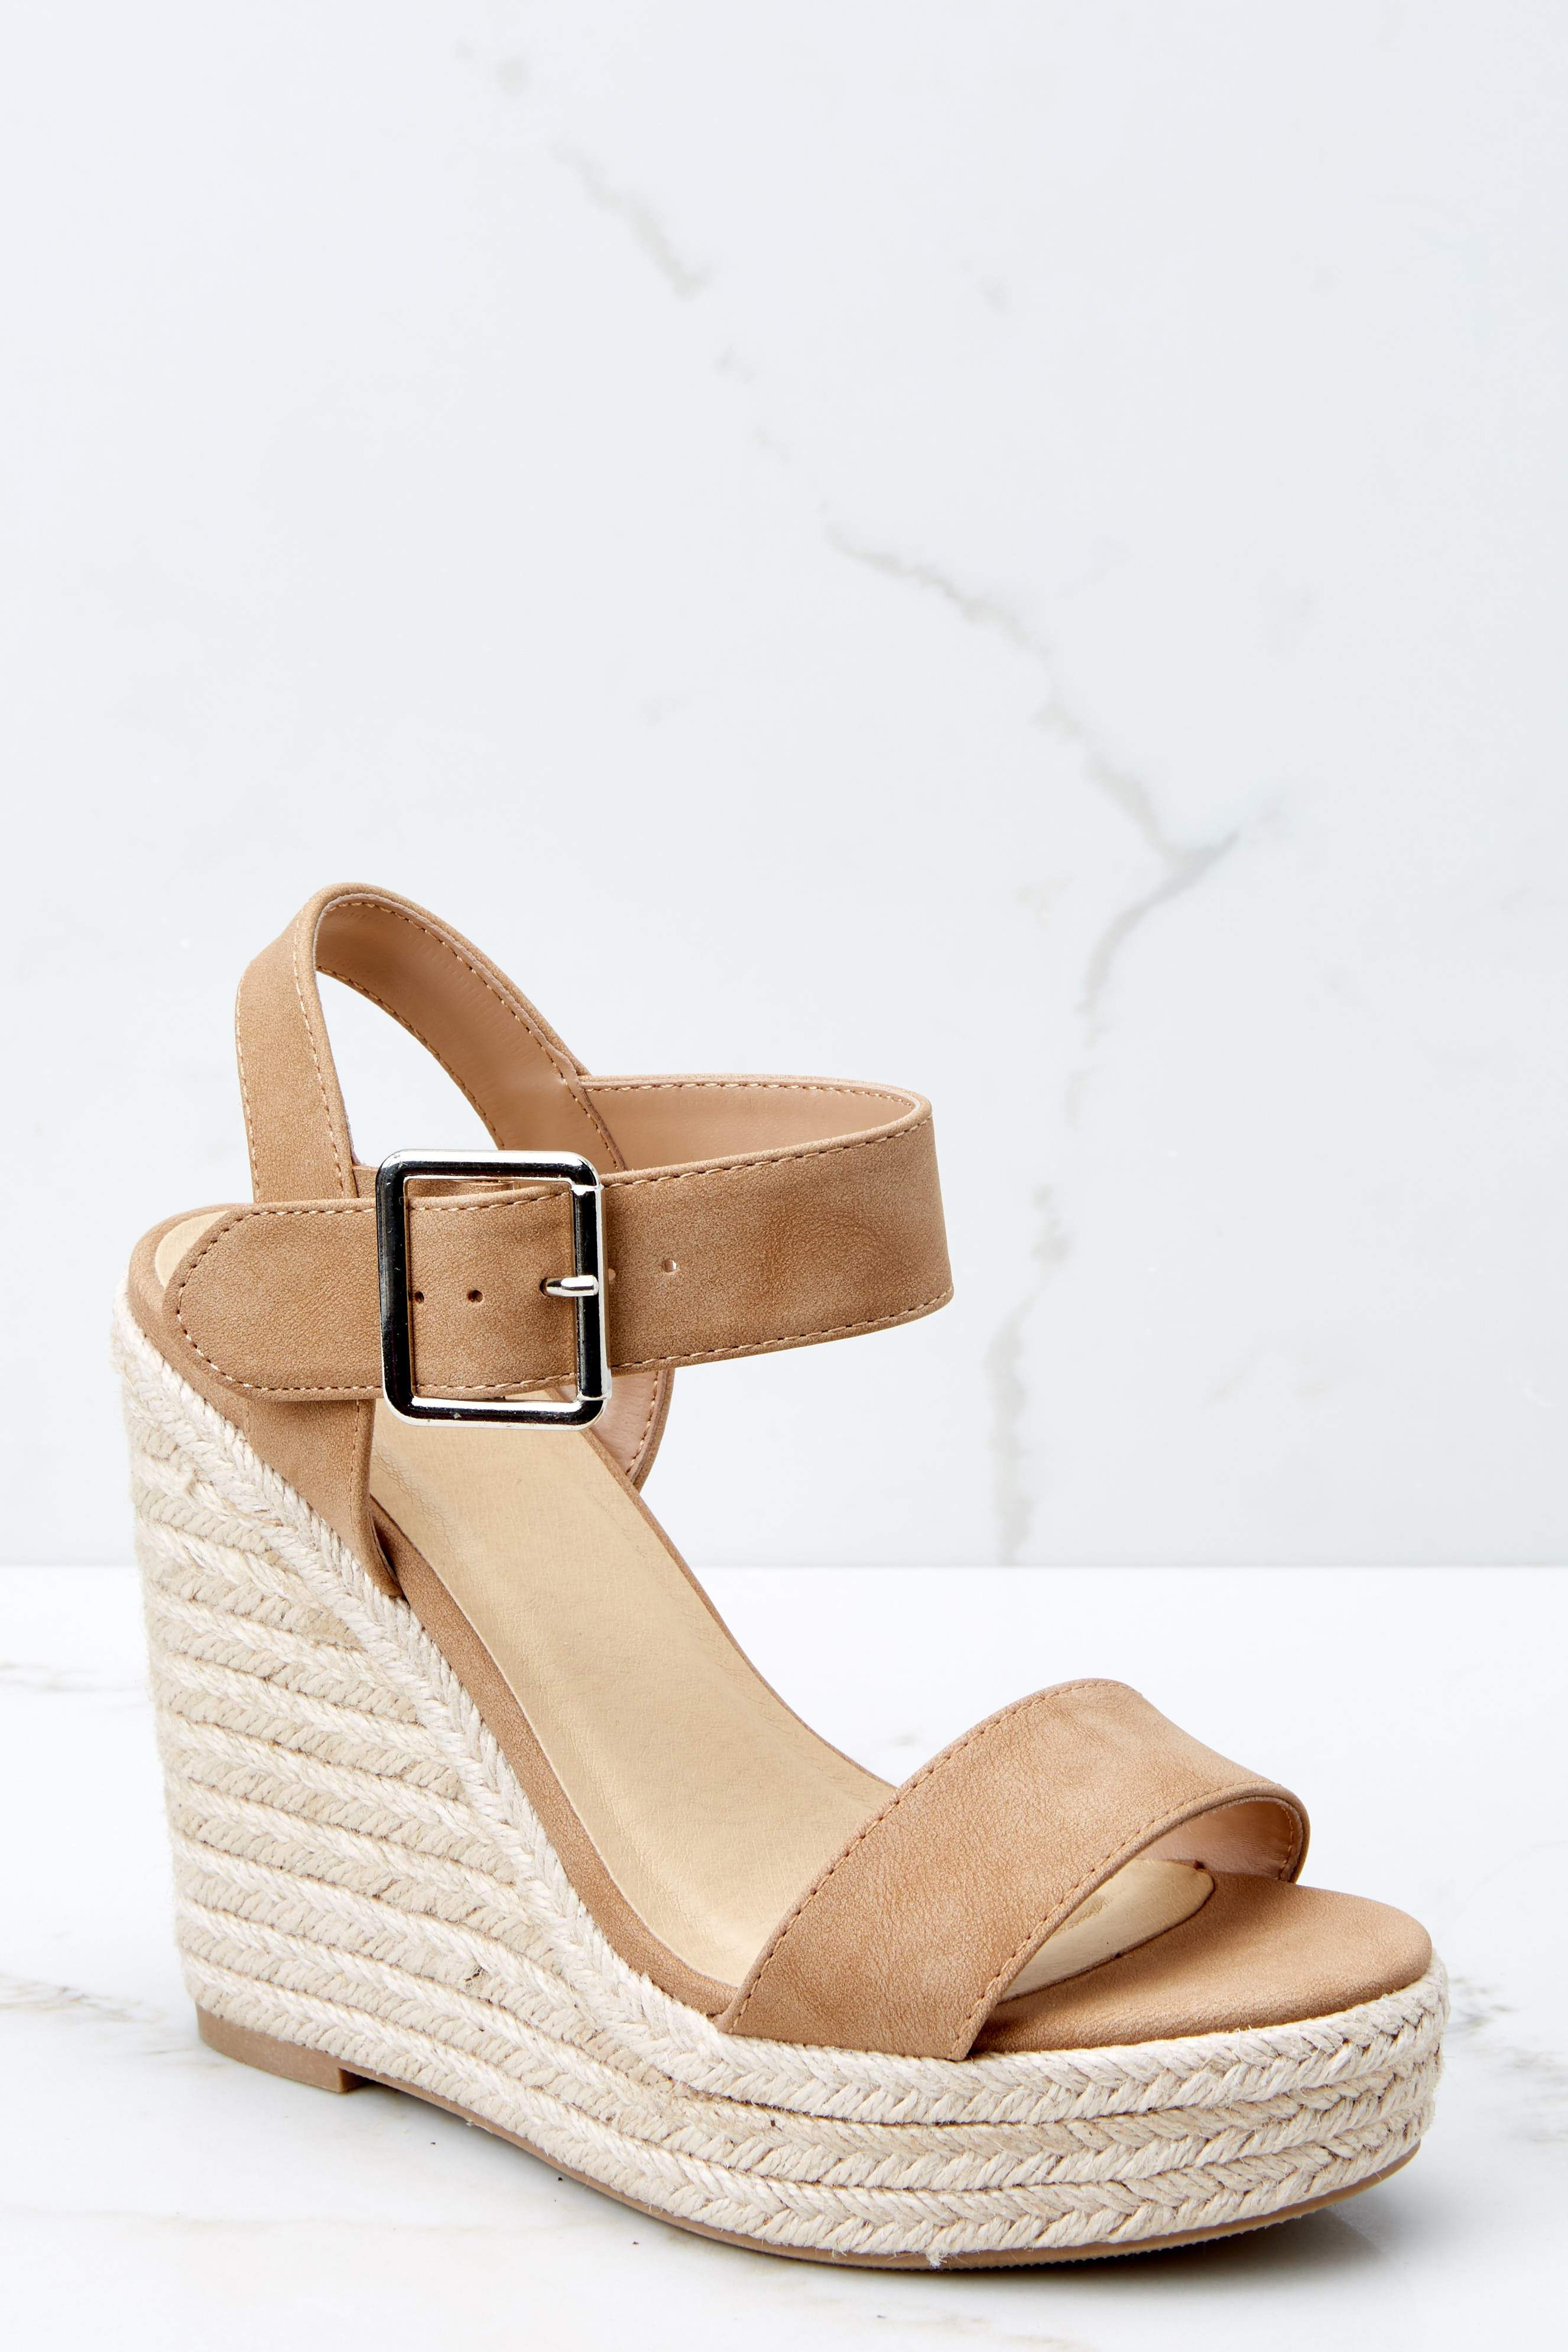 668ffea690a7 Sexy Beige Sandal Wedges - Vegan Leather Platform Wedges - Shoes -  36 –  Red Dress Boutique